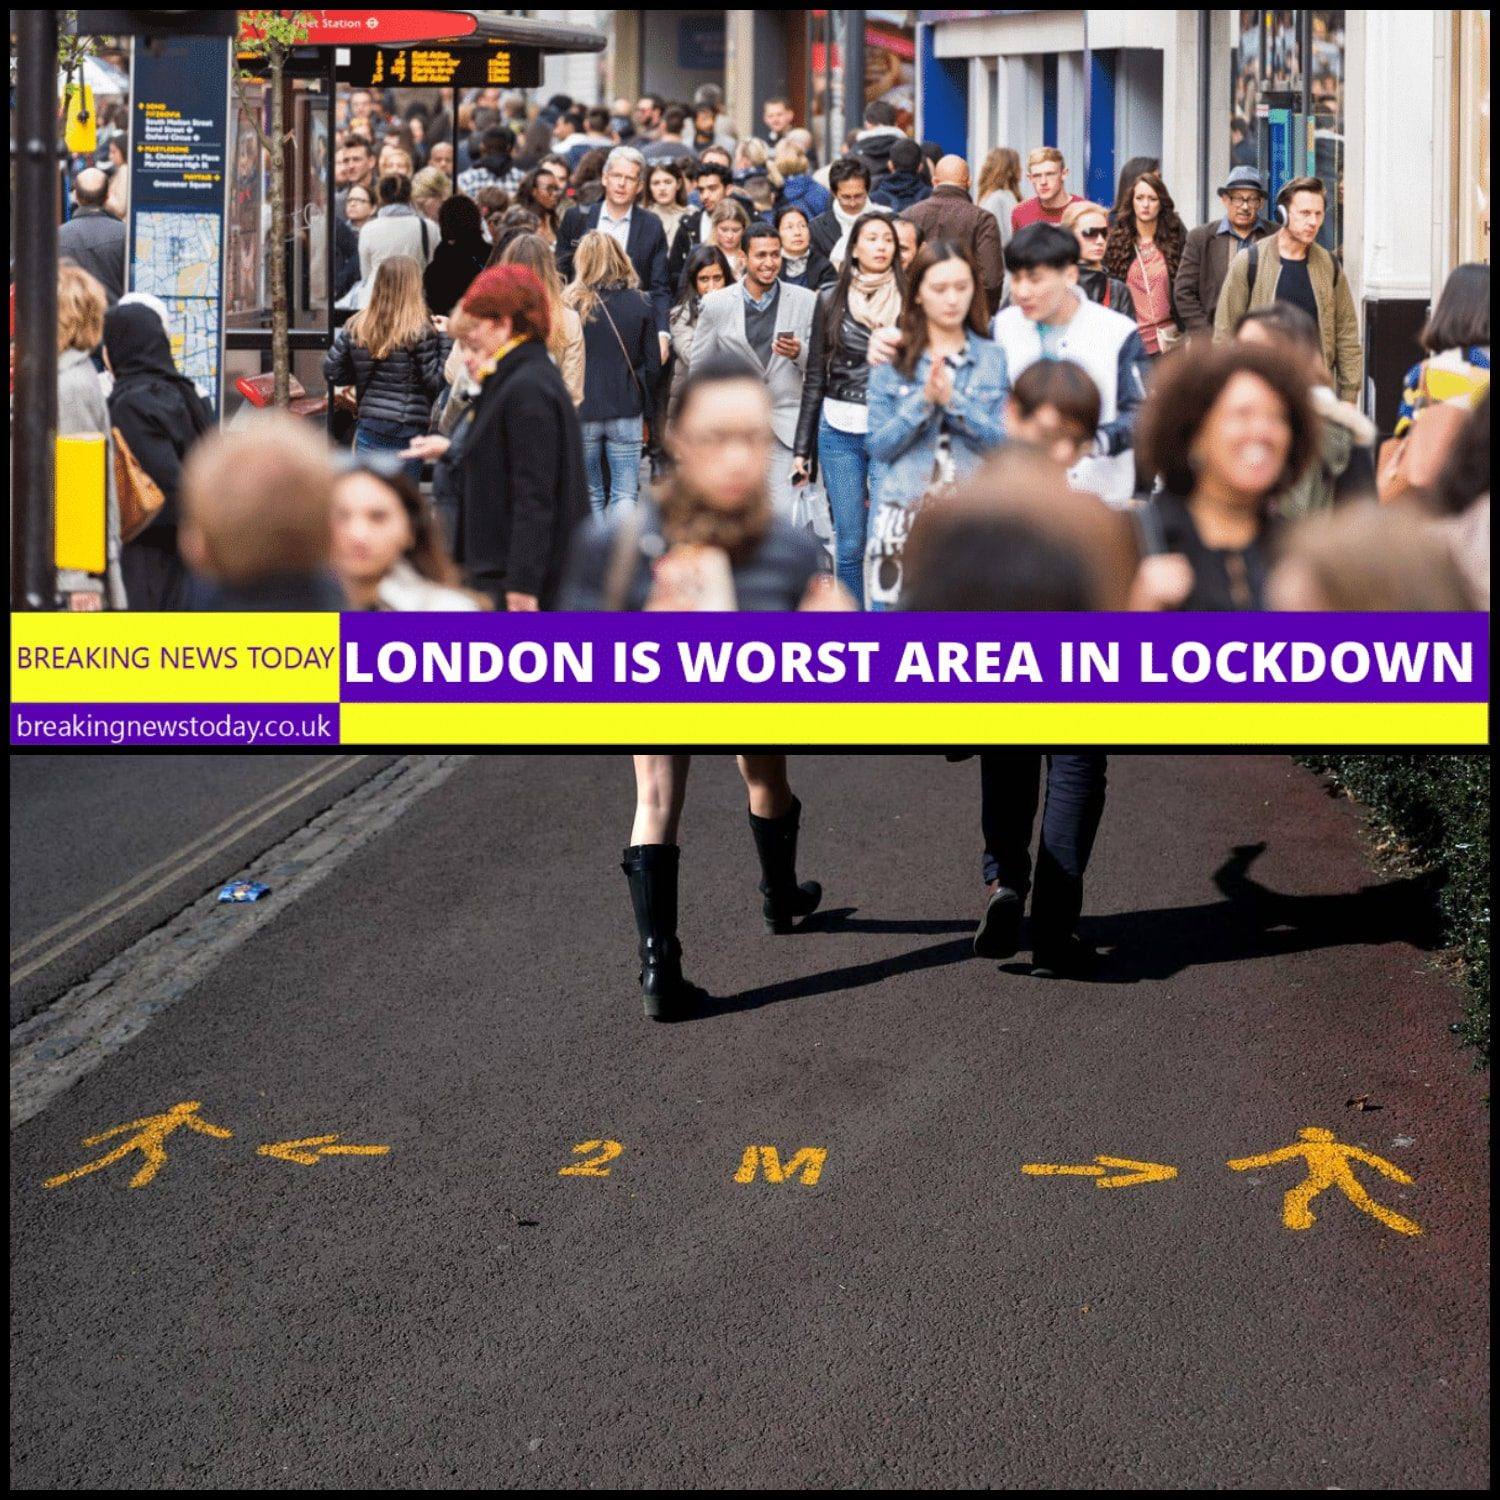 London ignores social distancing and lockdown stay home Ester weekend